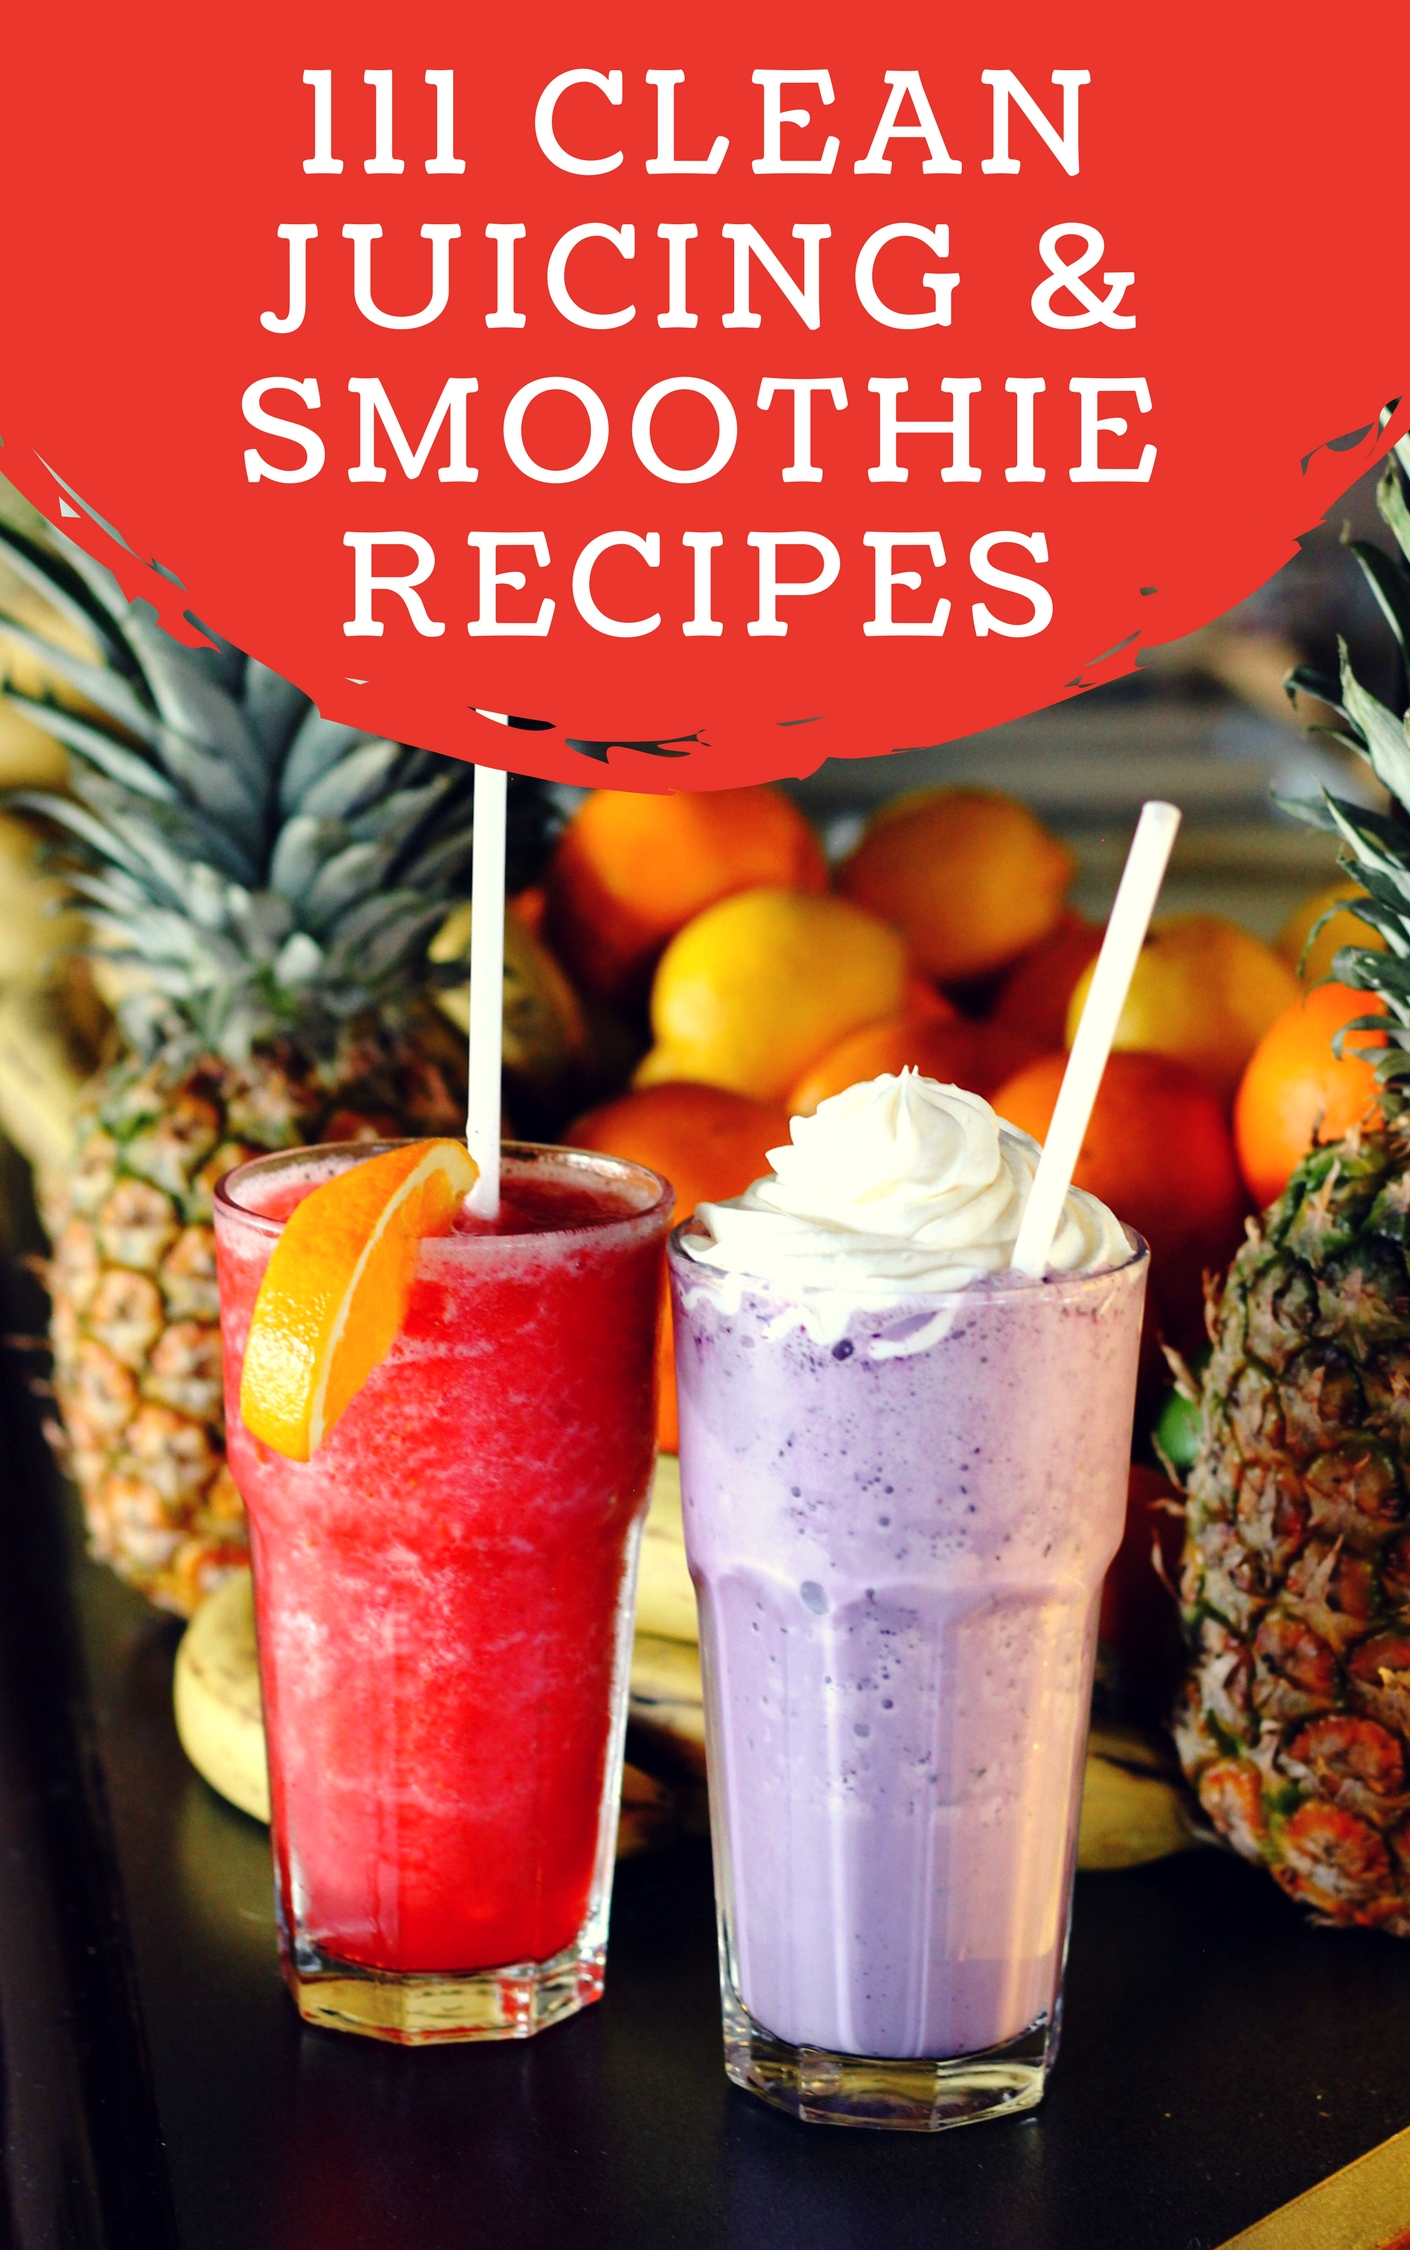 111 juicing and smoothie recipes with pictures